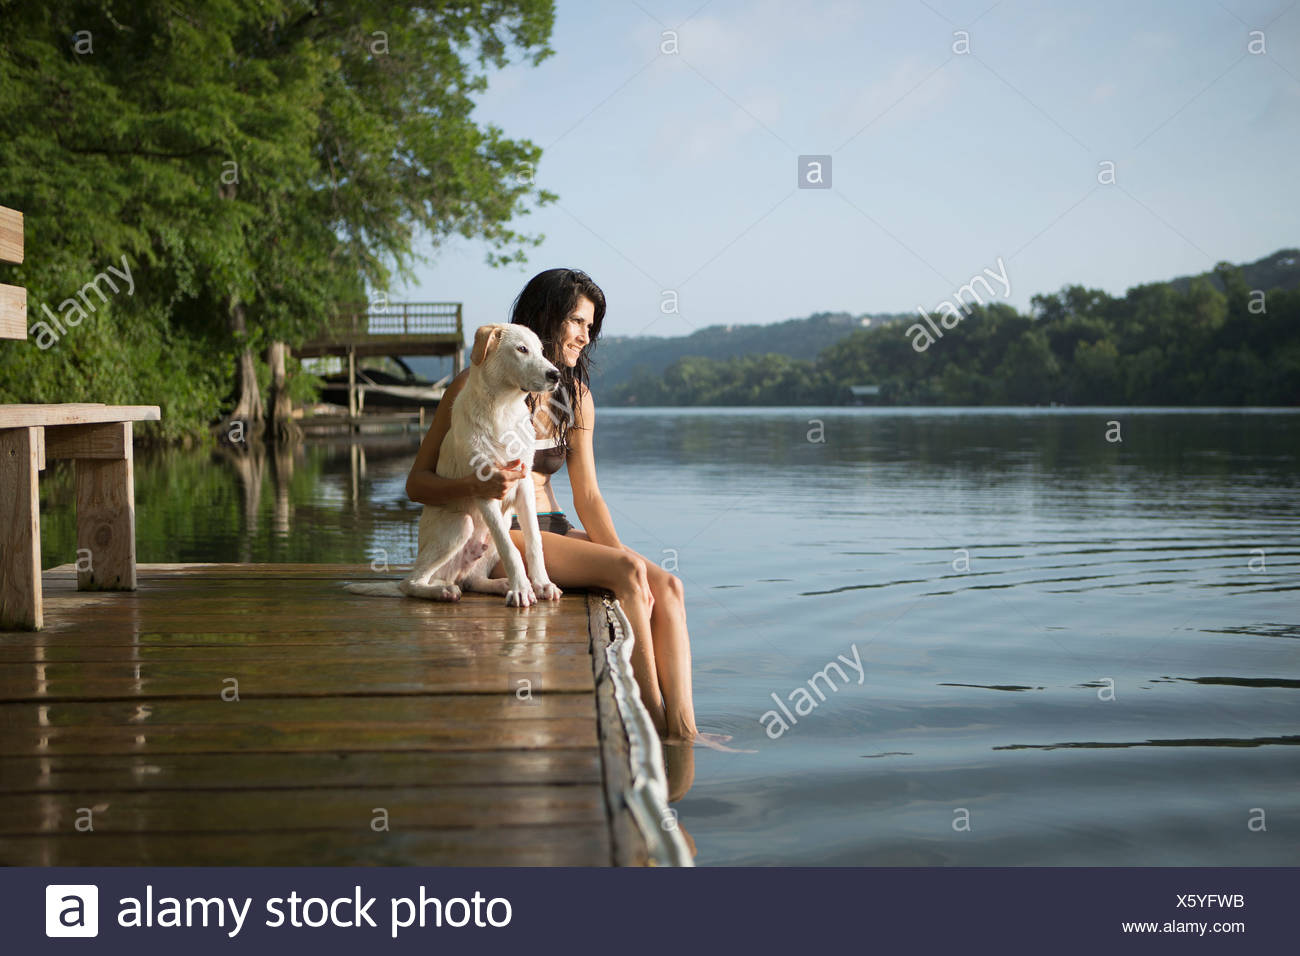 A woman with her arm around a small white dog on a jetty on a lake. - Stock Image